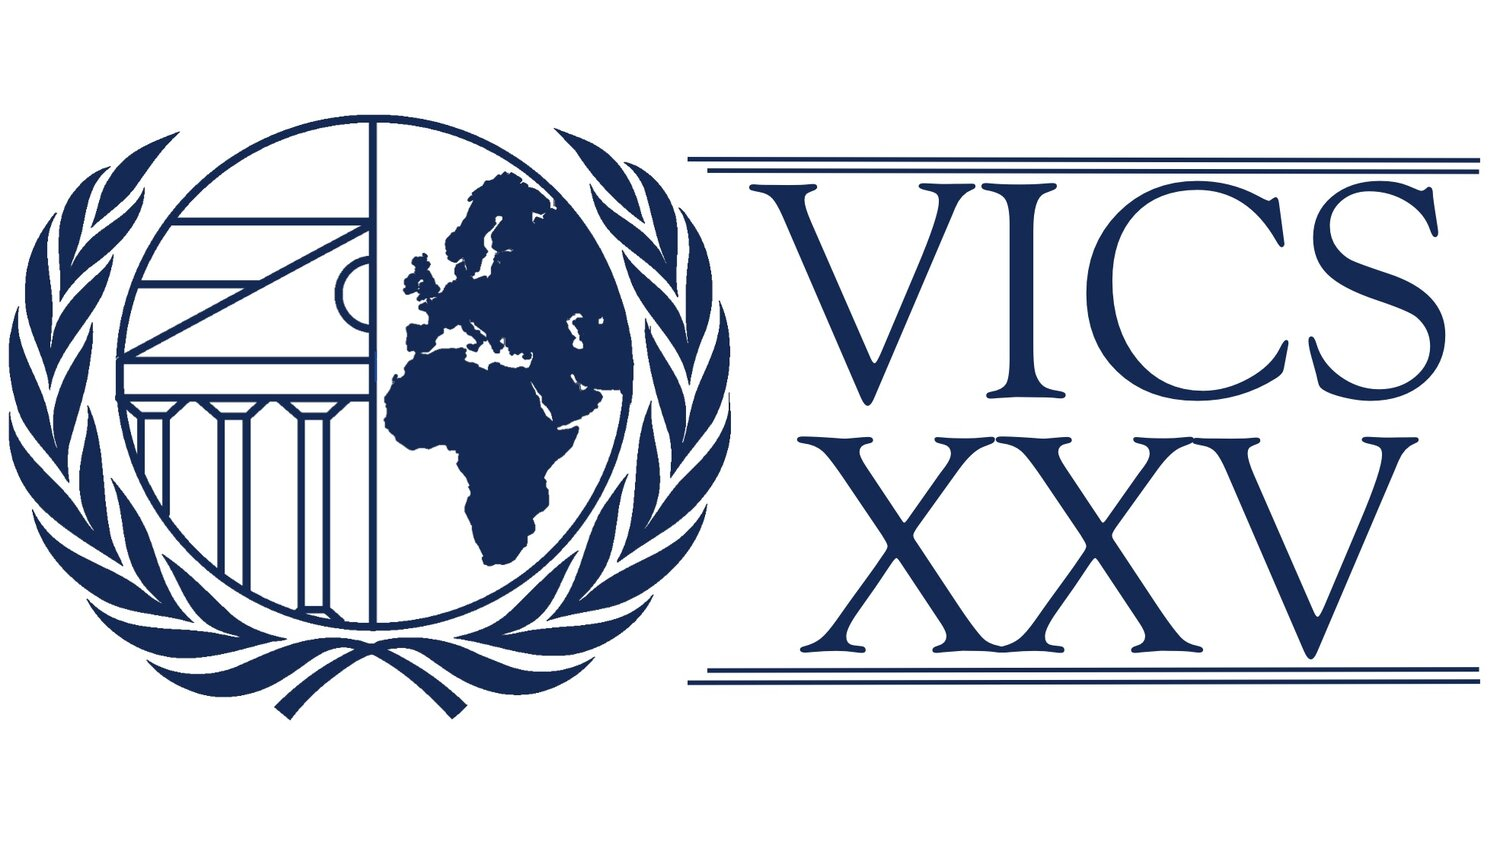 24th Virginia International Crisis Simulation - VICS XXIV